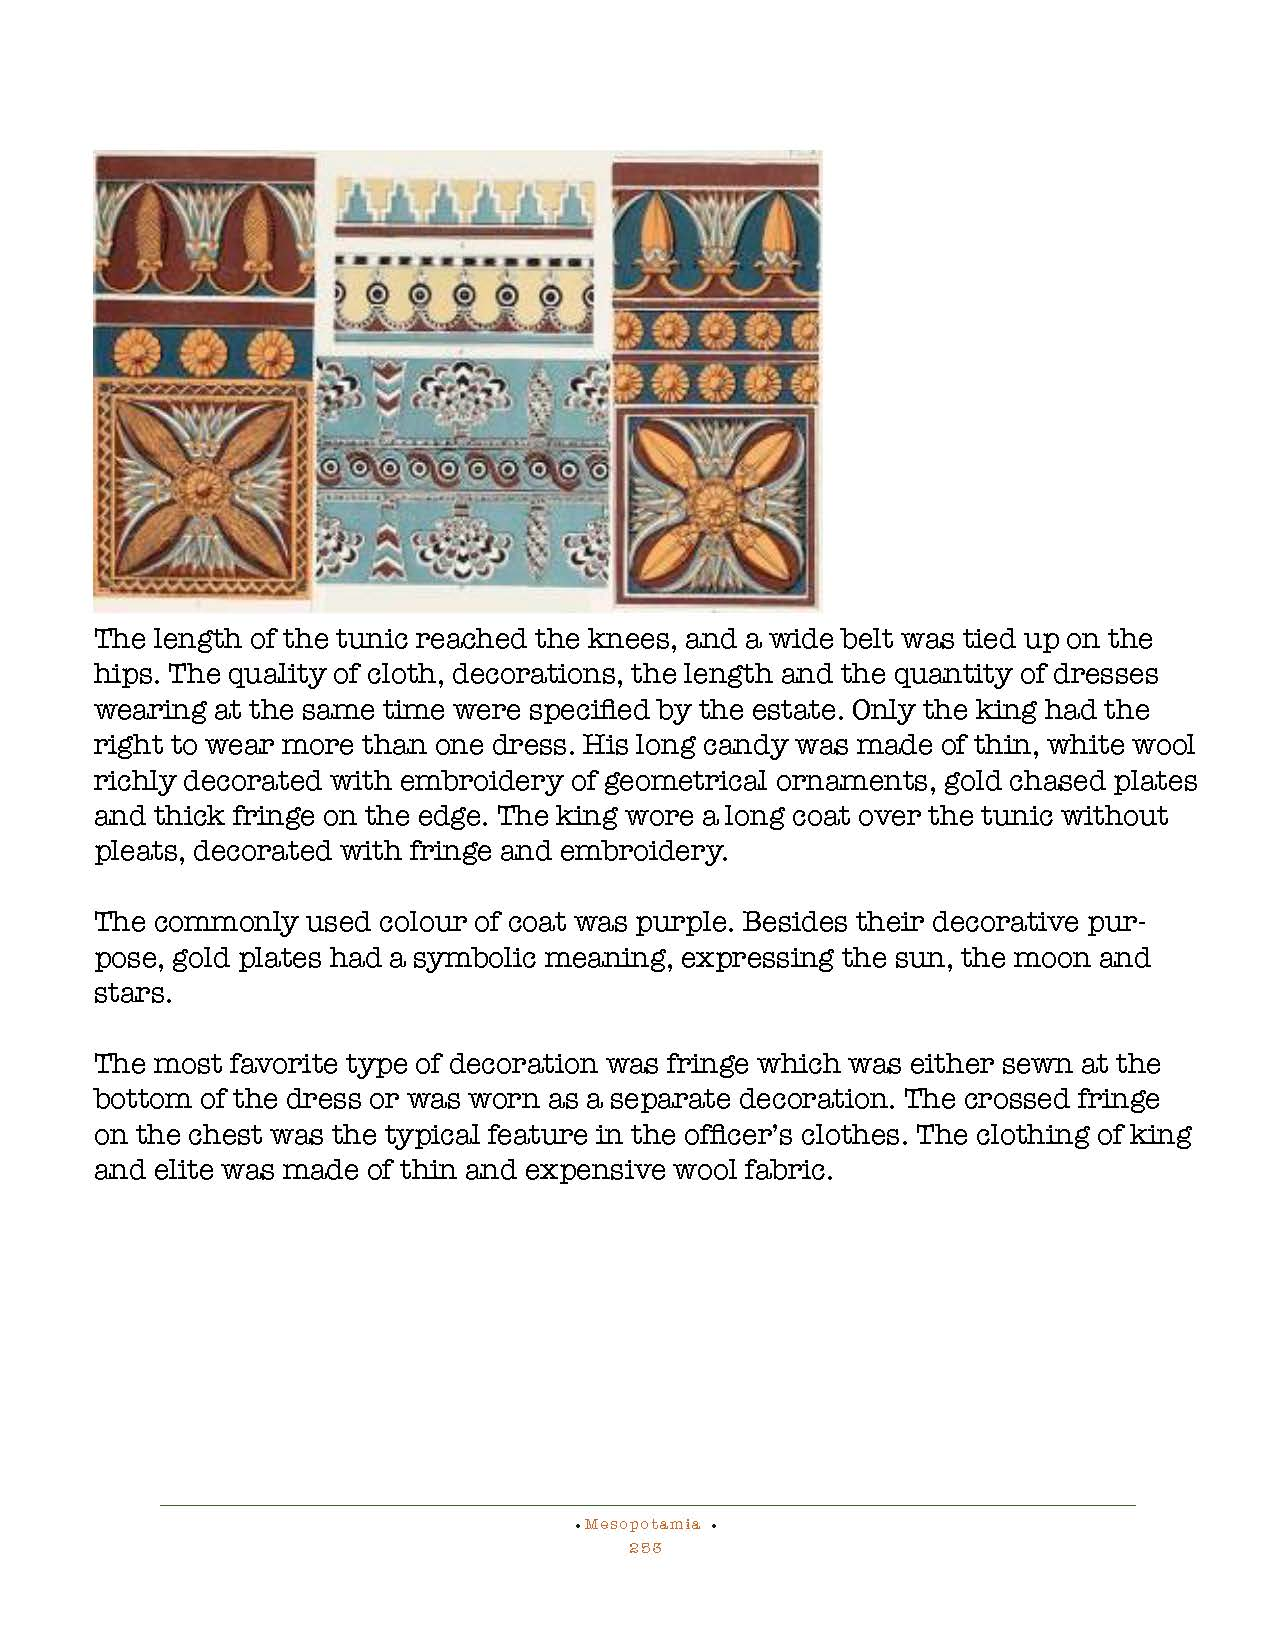 HOCE- Fertile Crescent Notes_Page_253.jpg